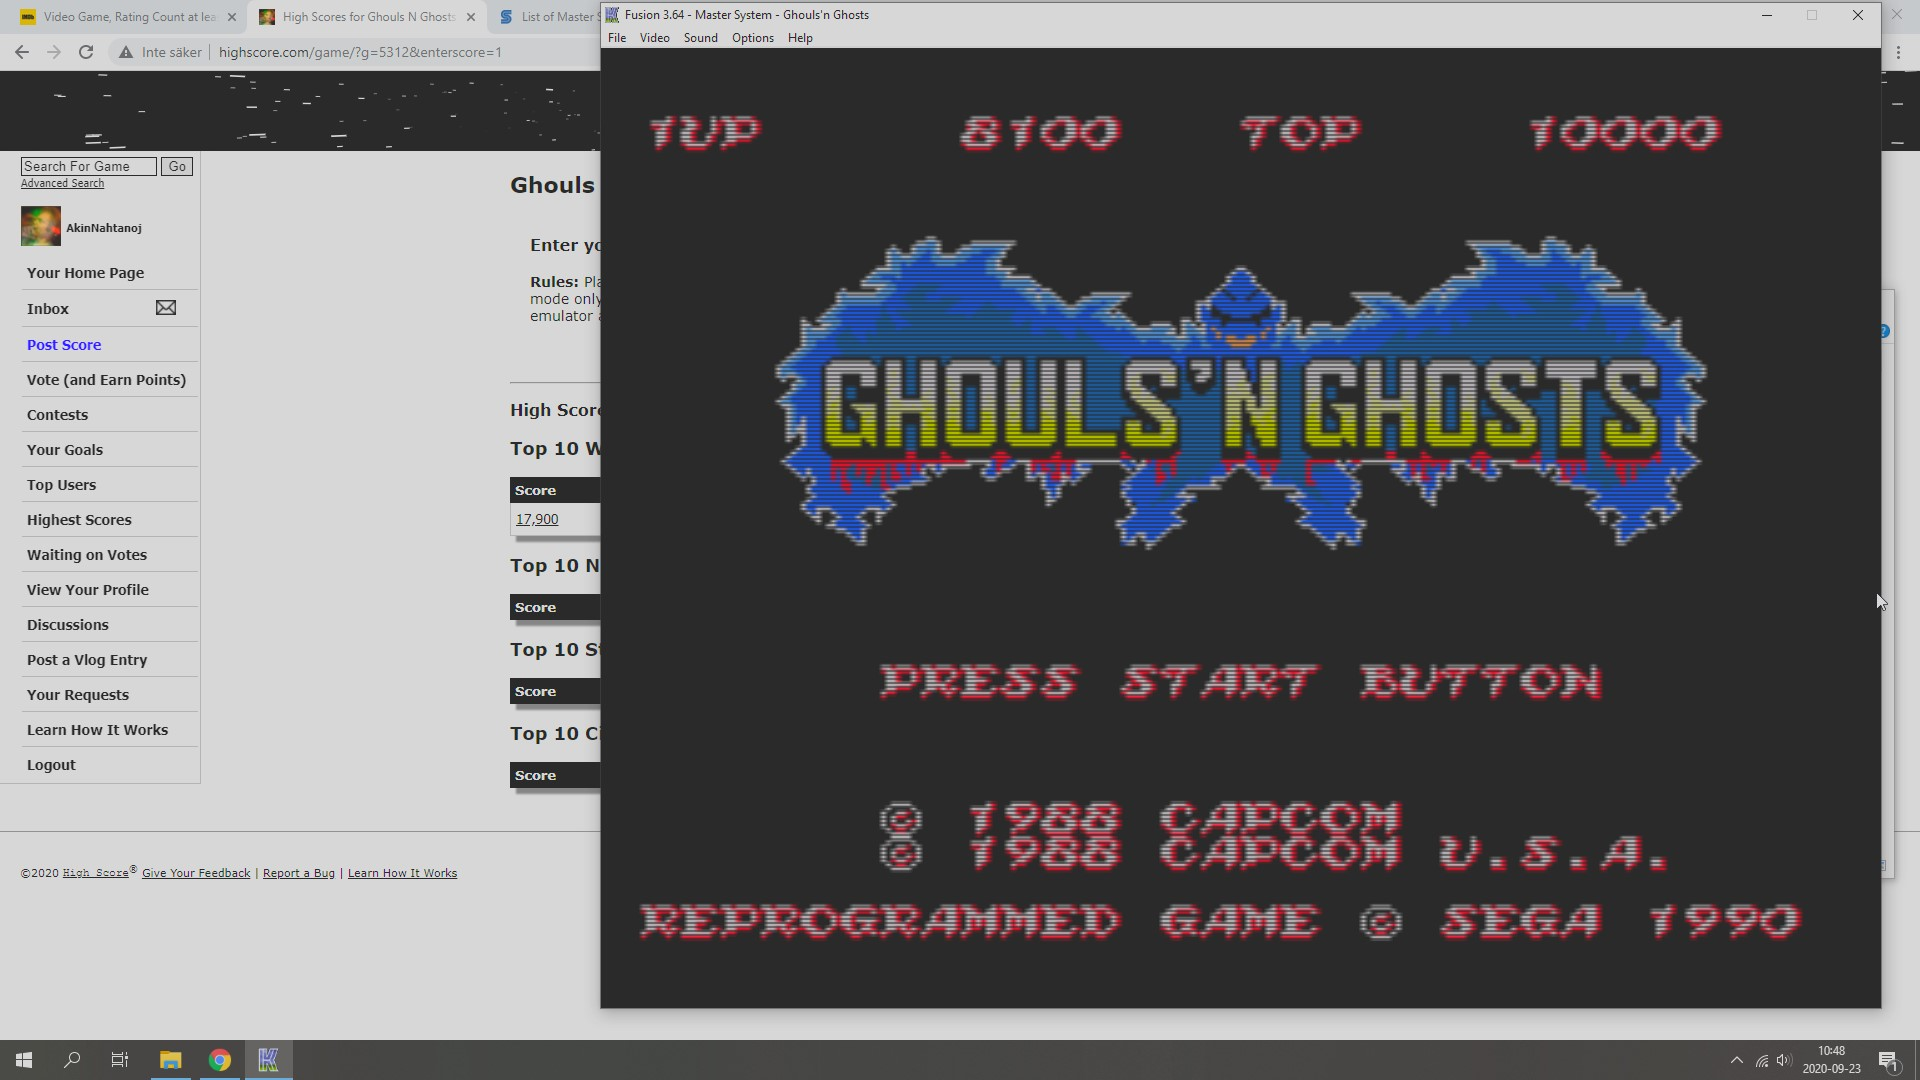 Ghouls N Ghosts 8,100 points